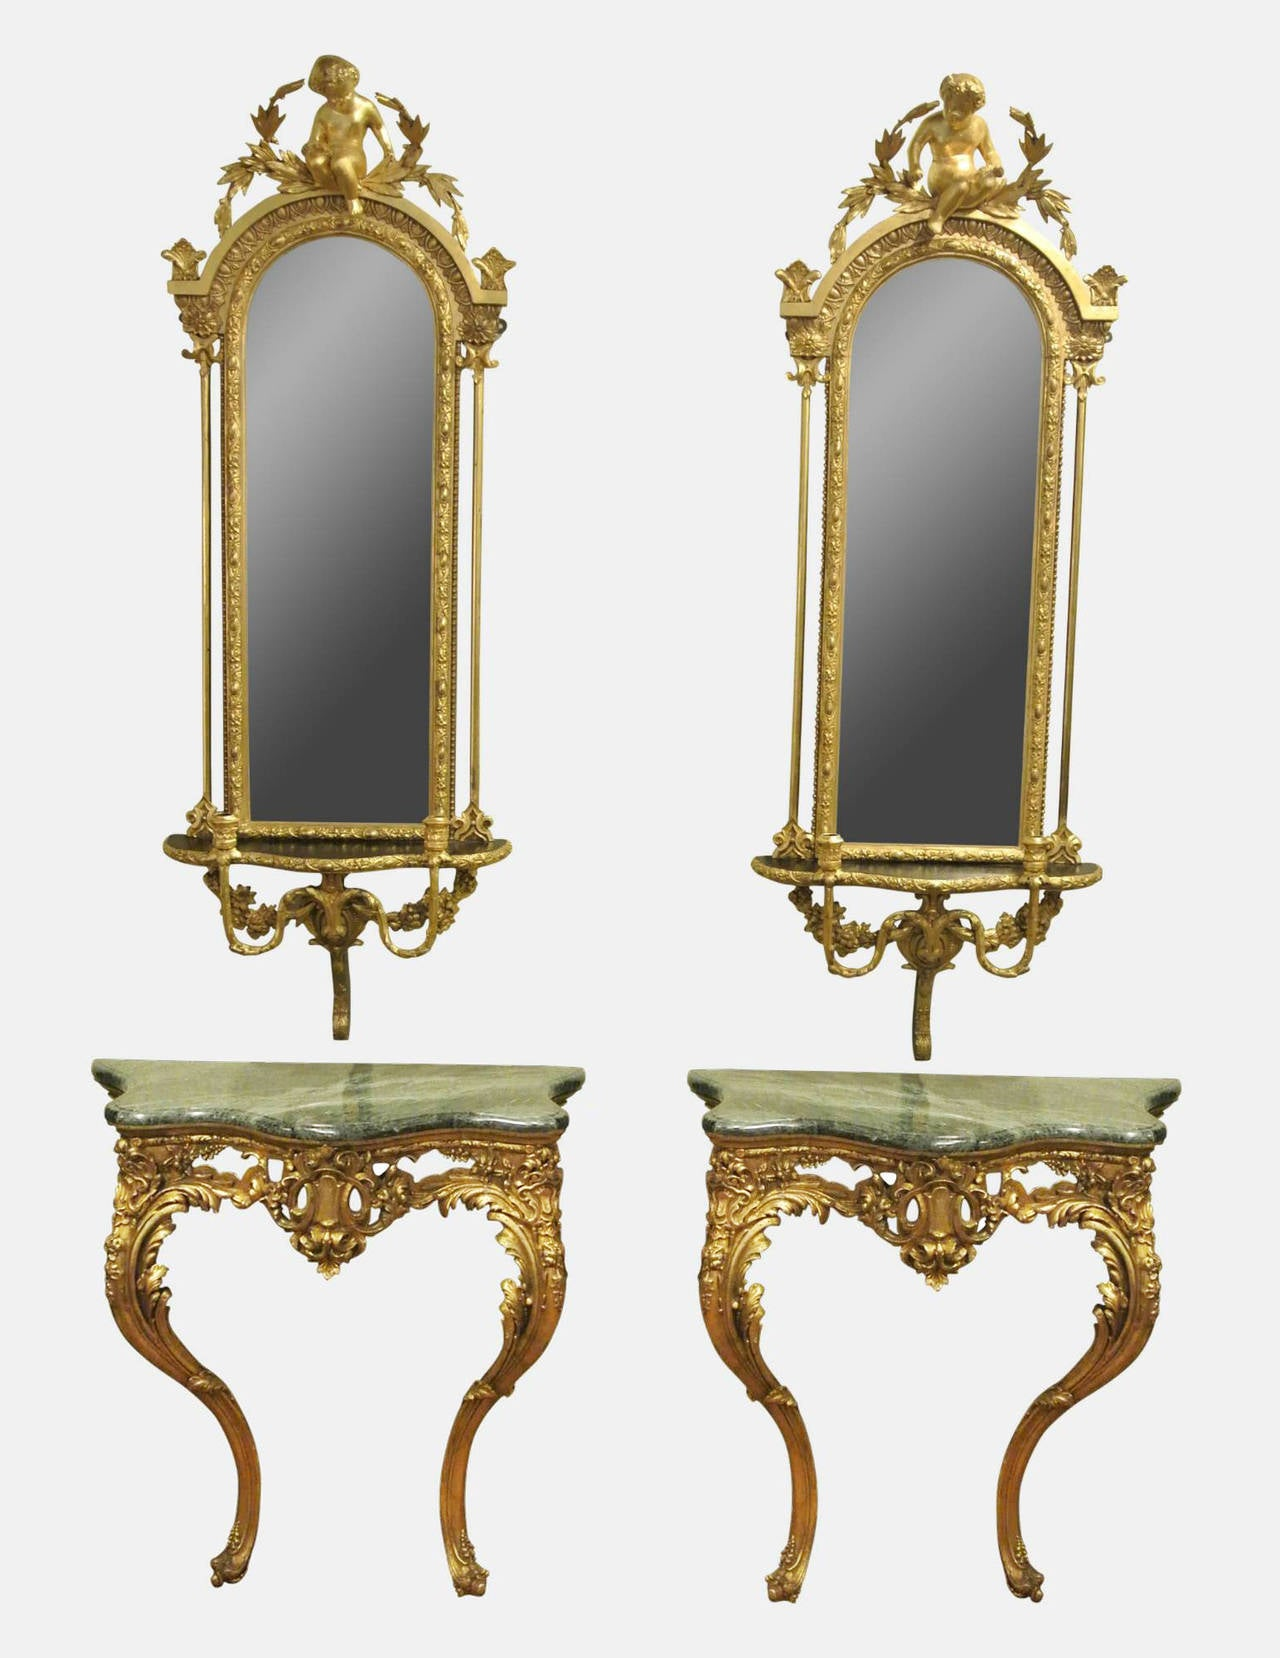 Pair of victorian giltwood and gesso console tables and girandole pair of victorian giltwood and gesso console tables and girandole mirrors 2 geotapseo Images